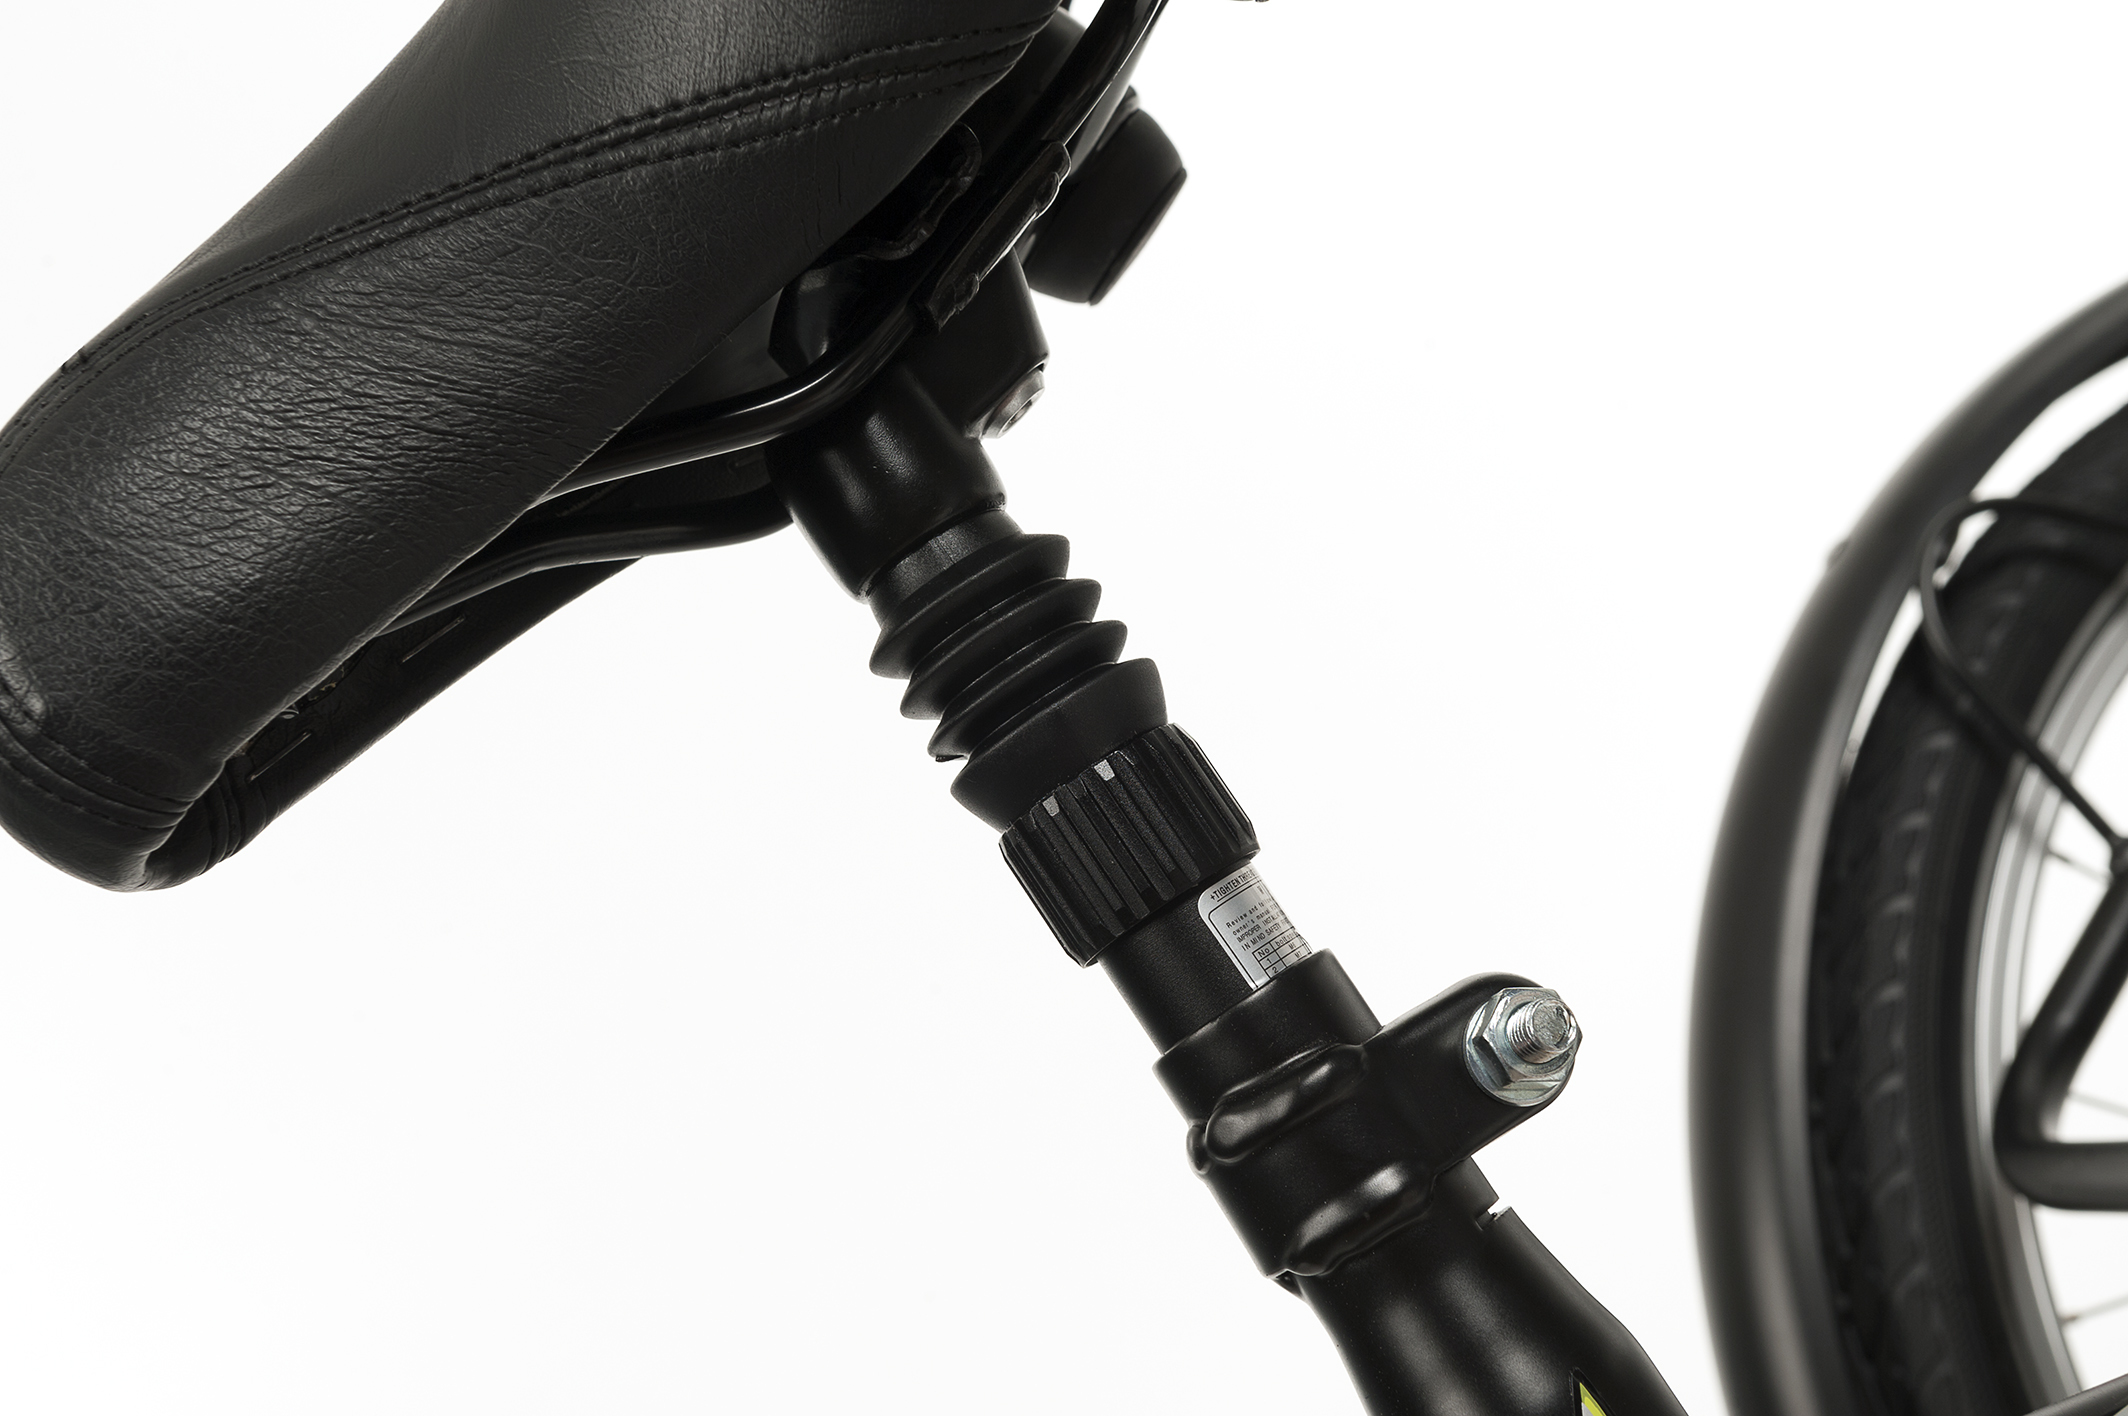 P5_-_Saddle_tube_with_shock_absorber